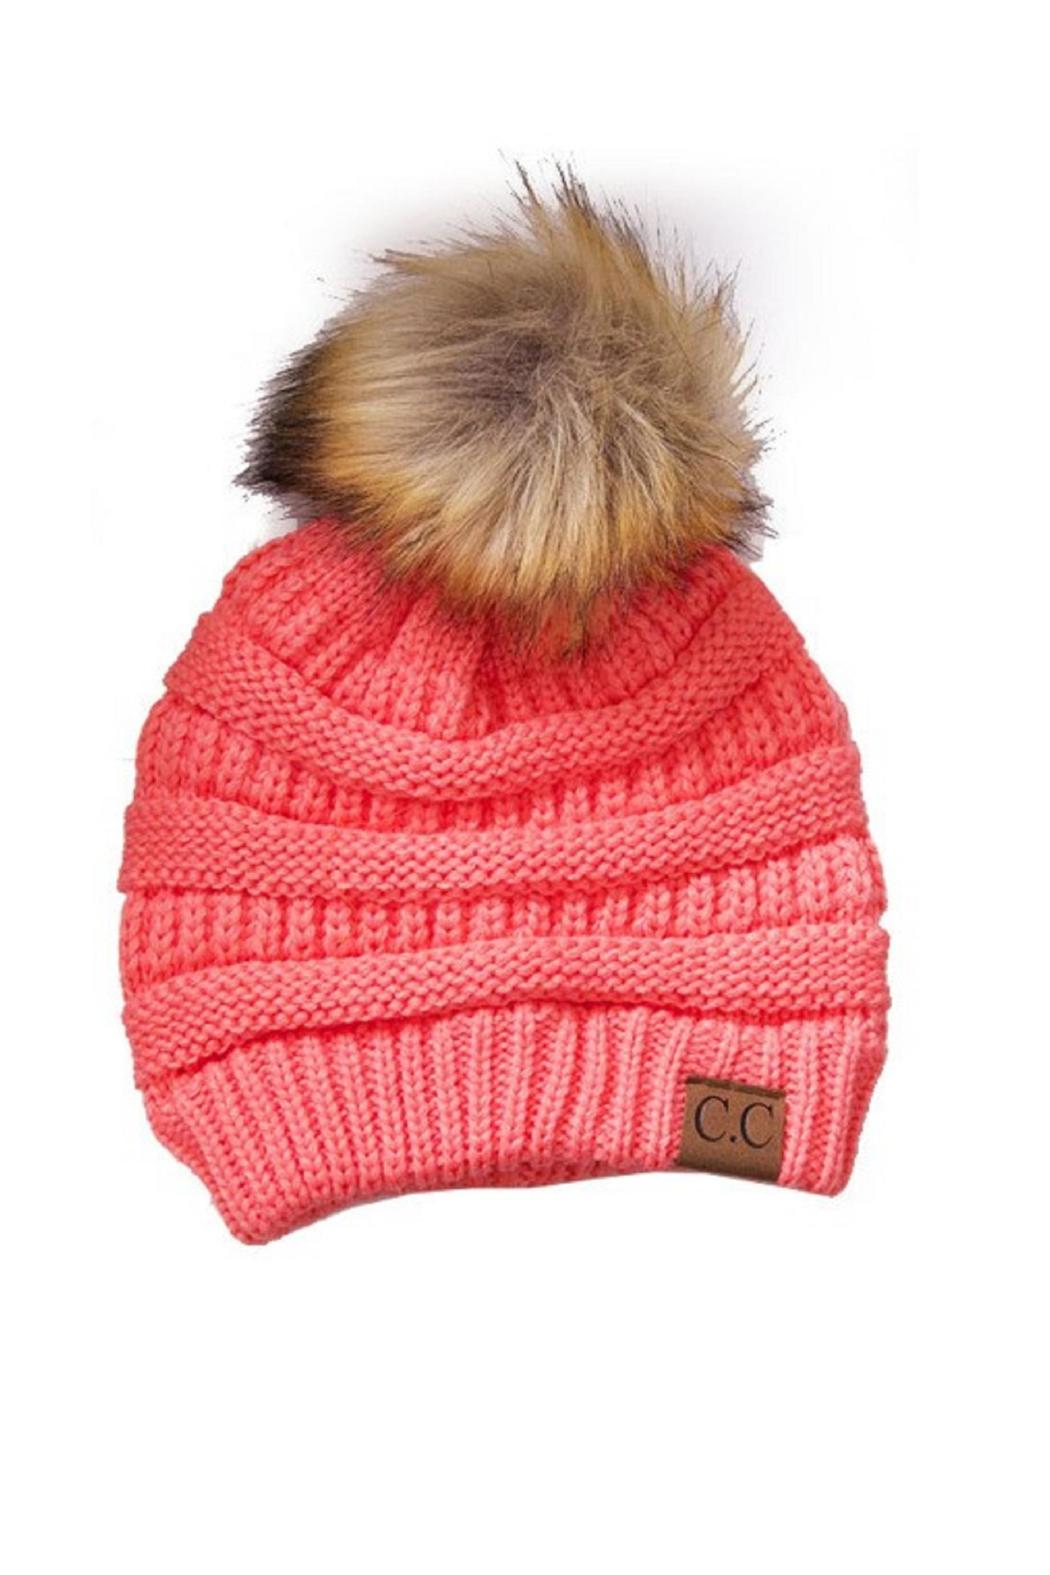 85e2757bf C.C Beanie The Mindy Beanie from Minneapolis by StyleTrolley ...